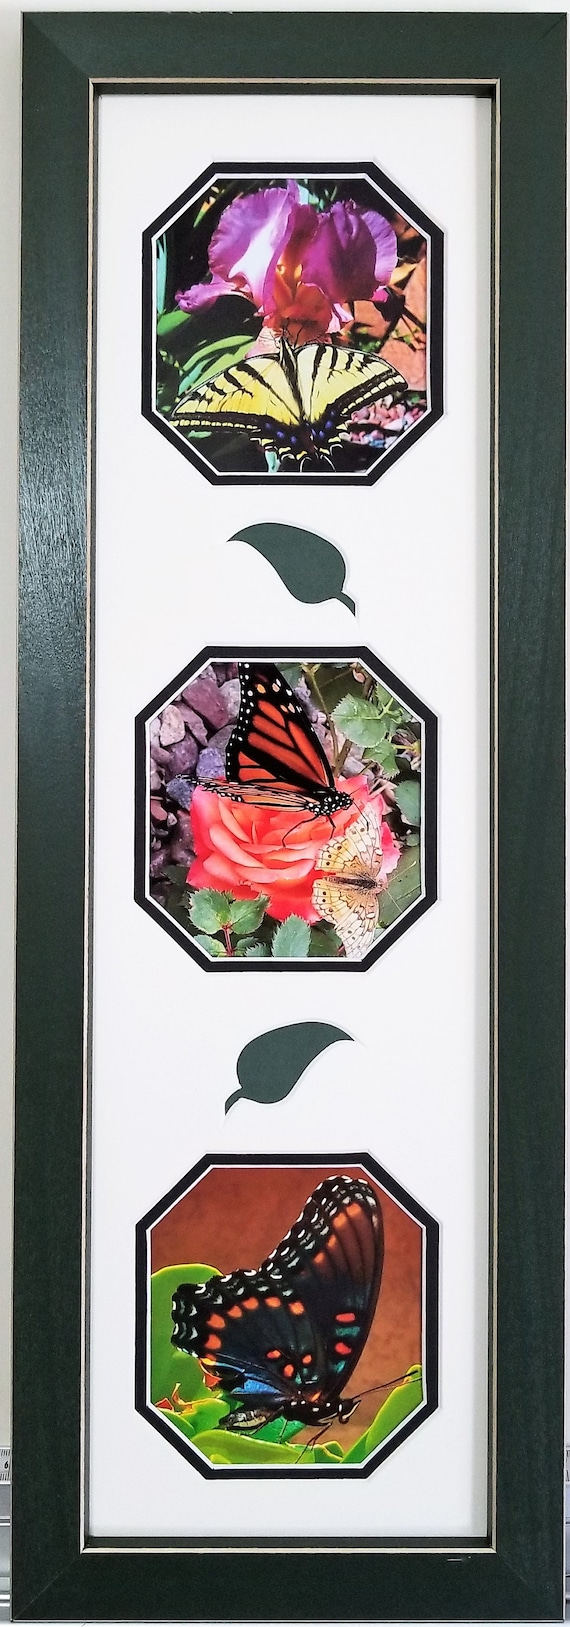 Butterfly photos custom framed and matted picture with three cutouts and decorative leaves for home decor and gift giving ready to hang